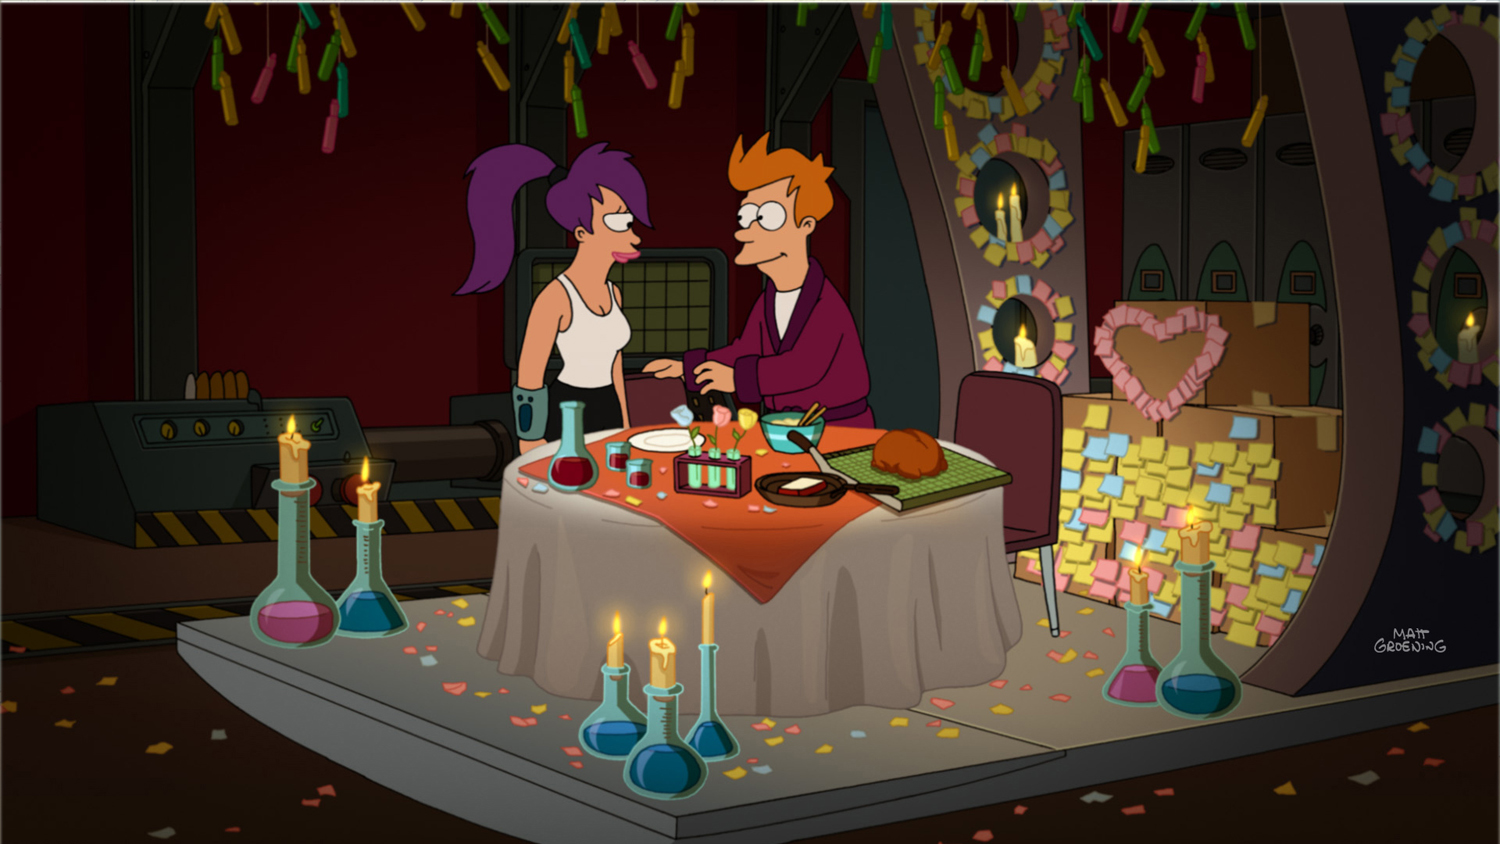 TV's 'Futurama' Launches Final Episodes Tonight